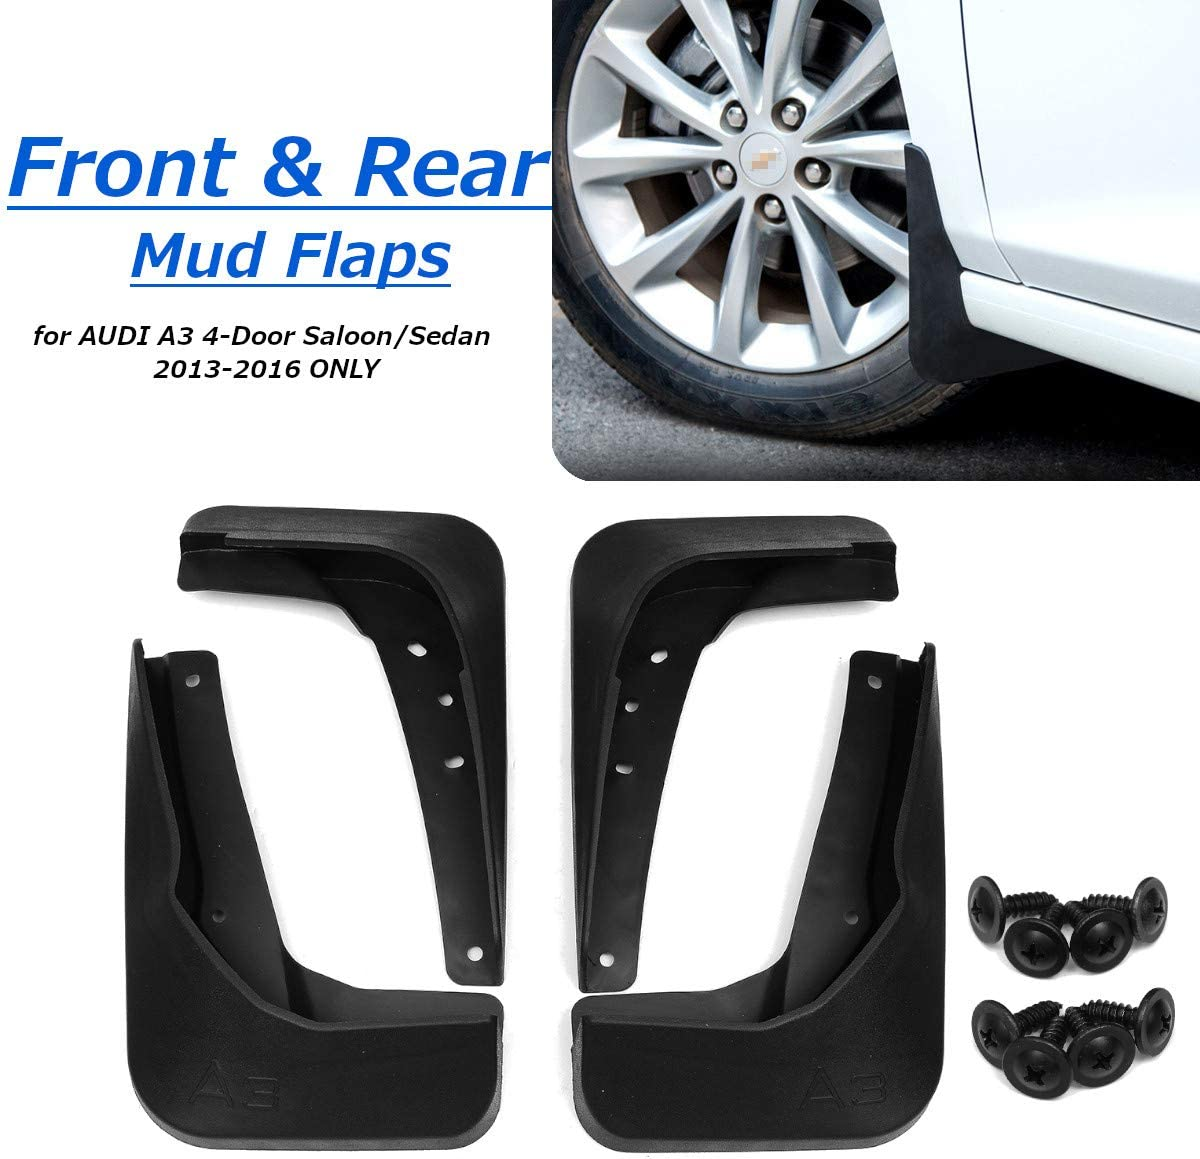 Easy Fit Splash Guards//Fender Flares Car Mudguards For Au di A3 Hatchback 2013-2016 New Black Front And Rear Wide Mudflaps Complete With Mounting Screws 4 Pieces Set